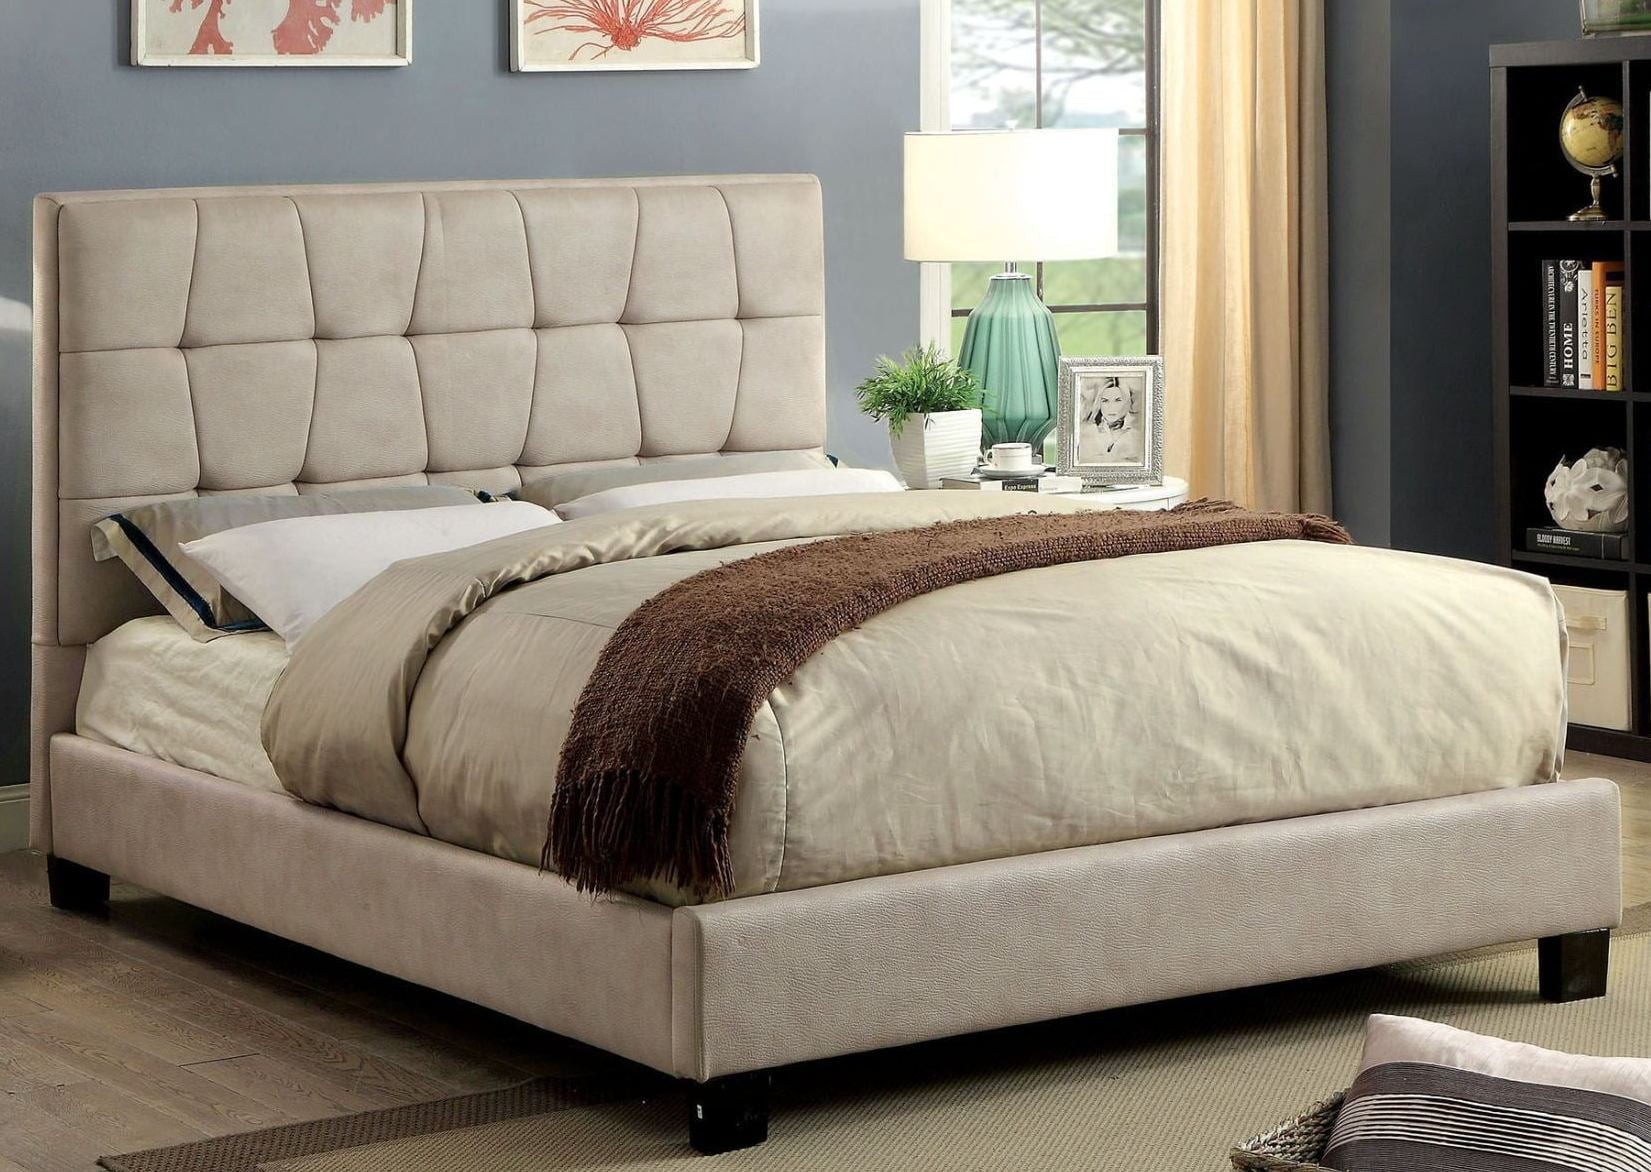 Hyadum Beige Cal King Upholstered Platform Bed